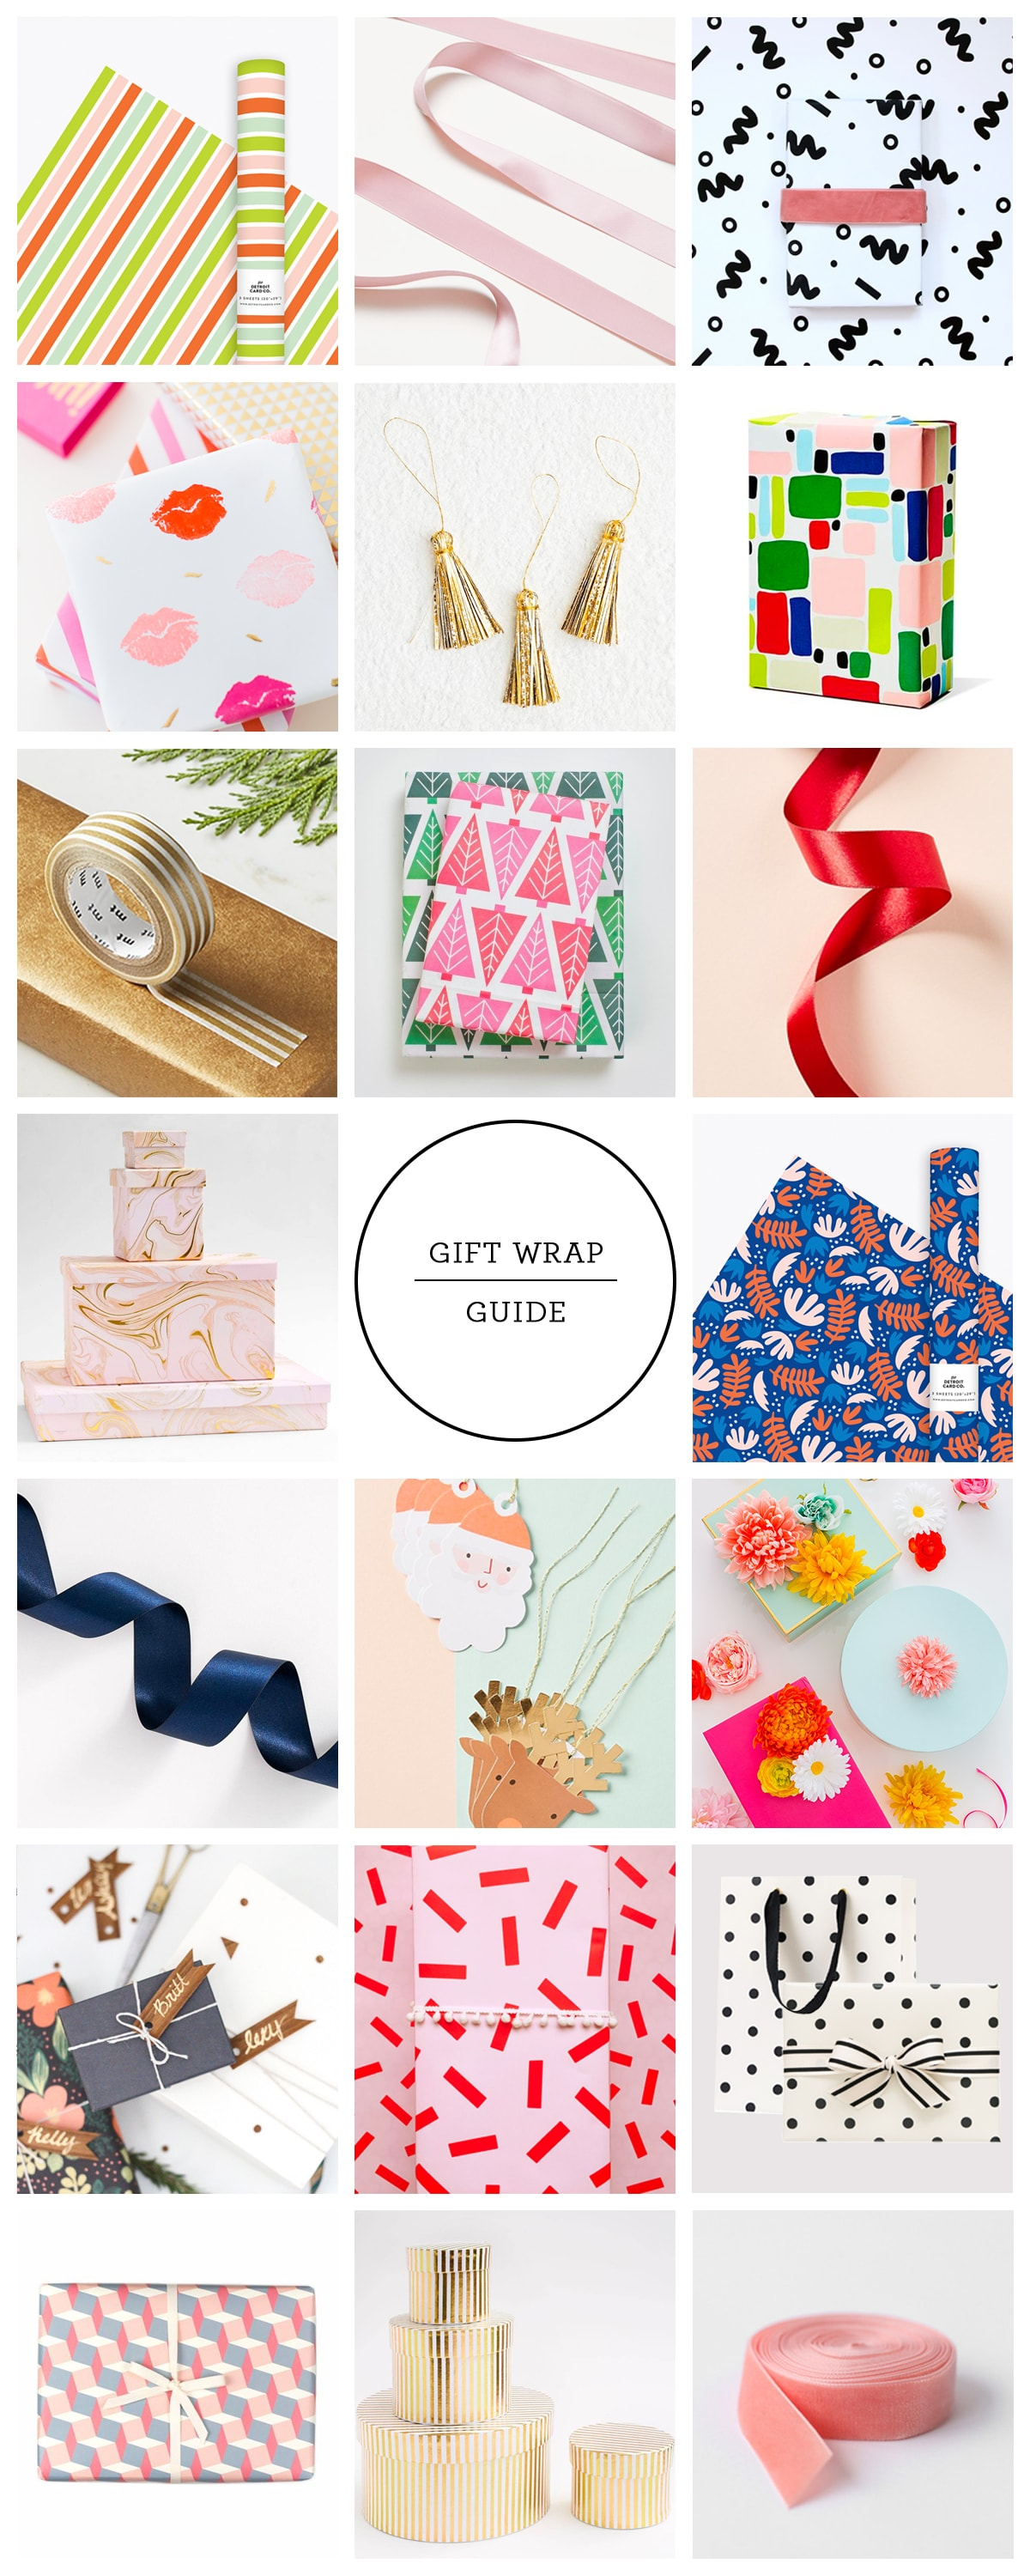 2018 holiday gift wrap shopping guide by top Houston lifestyle blogger Ashley Rose of Sugar and Cloth